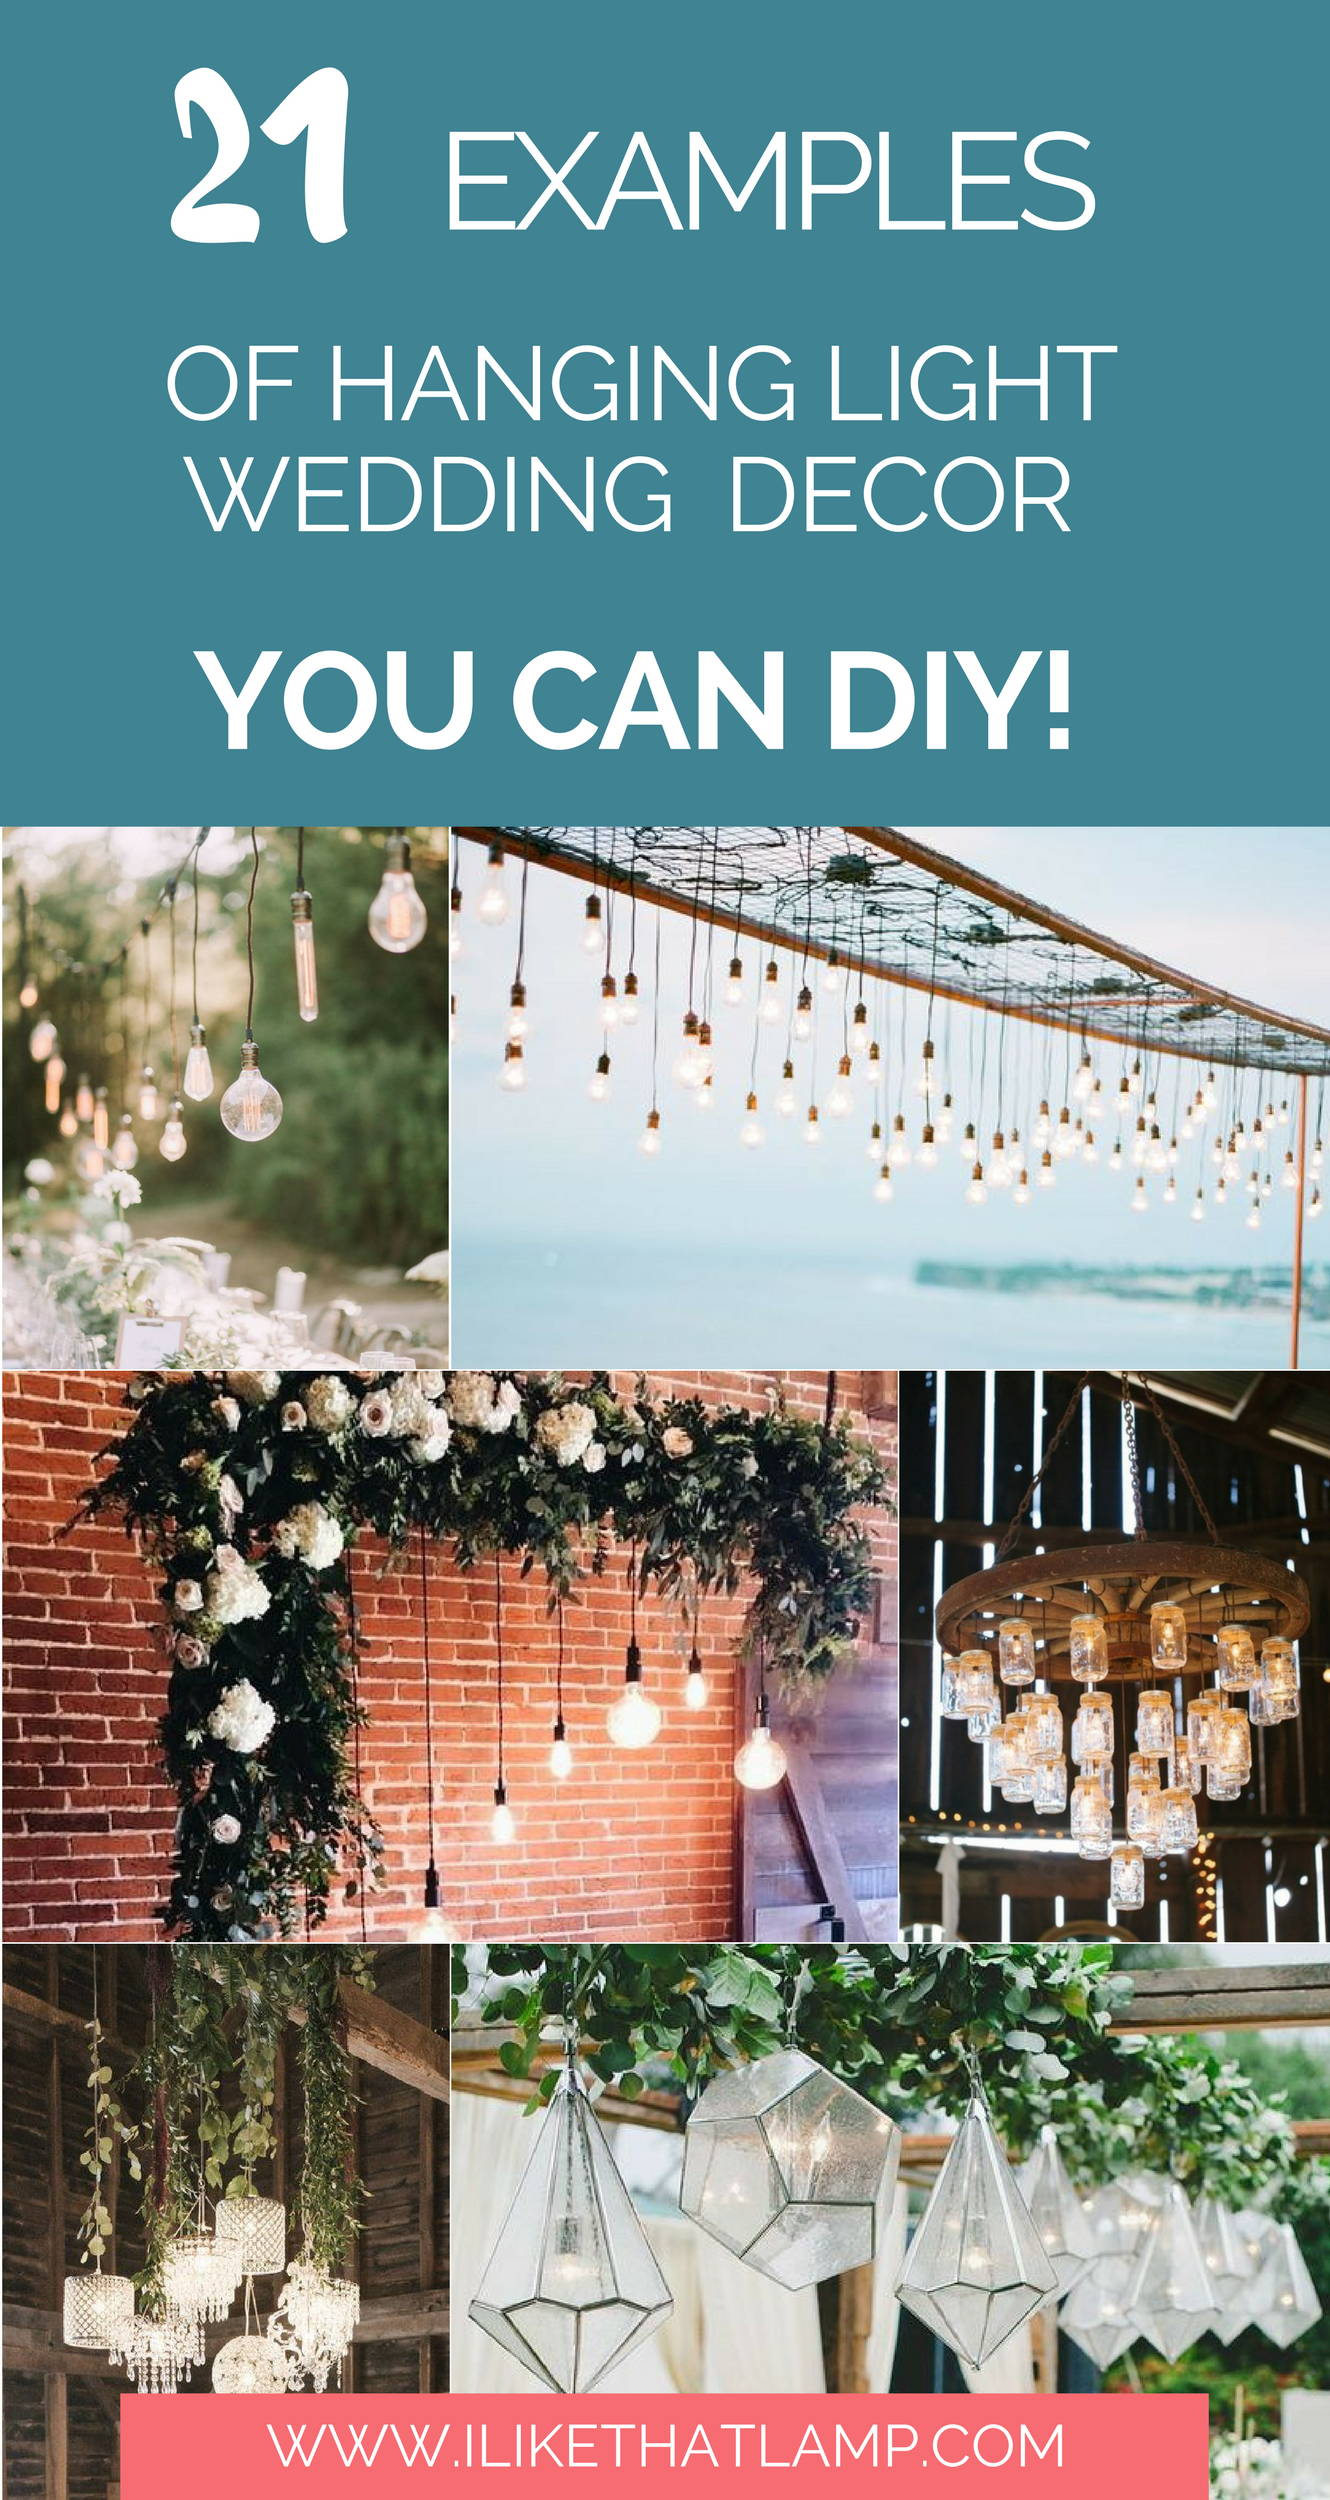 21 Examples of Hanging Lighting Decor That You Can Totally DIY Yourself! Visit www.ilikethatlamp.com for Tips + Tutorials on How To DIY a Hanging Light Fixture for Your Wedding!